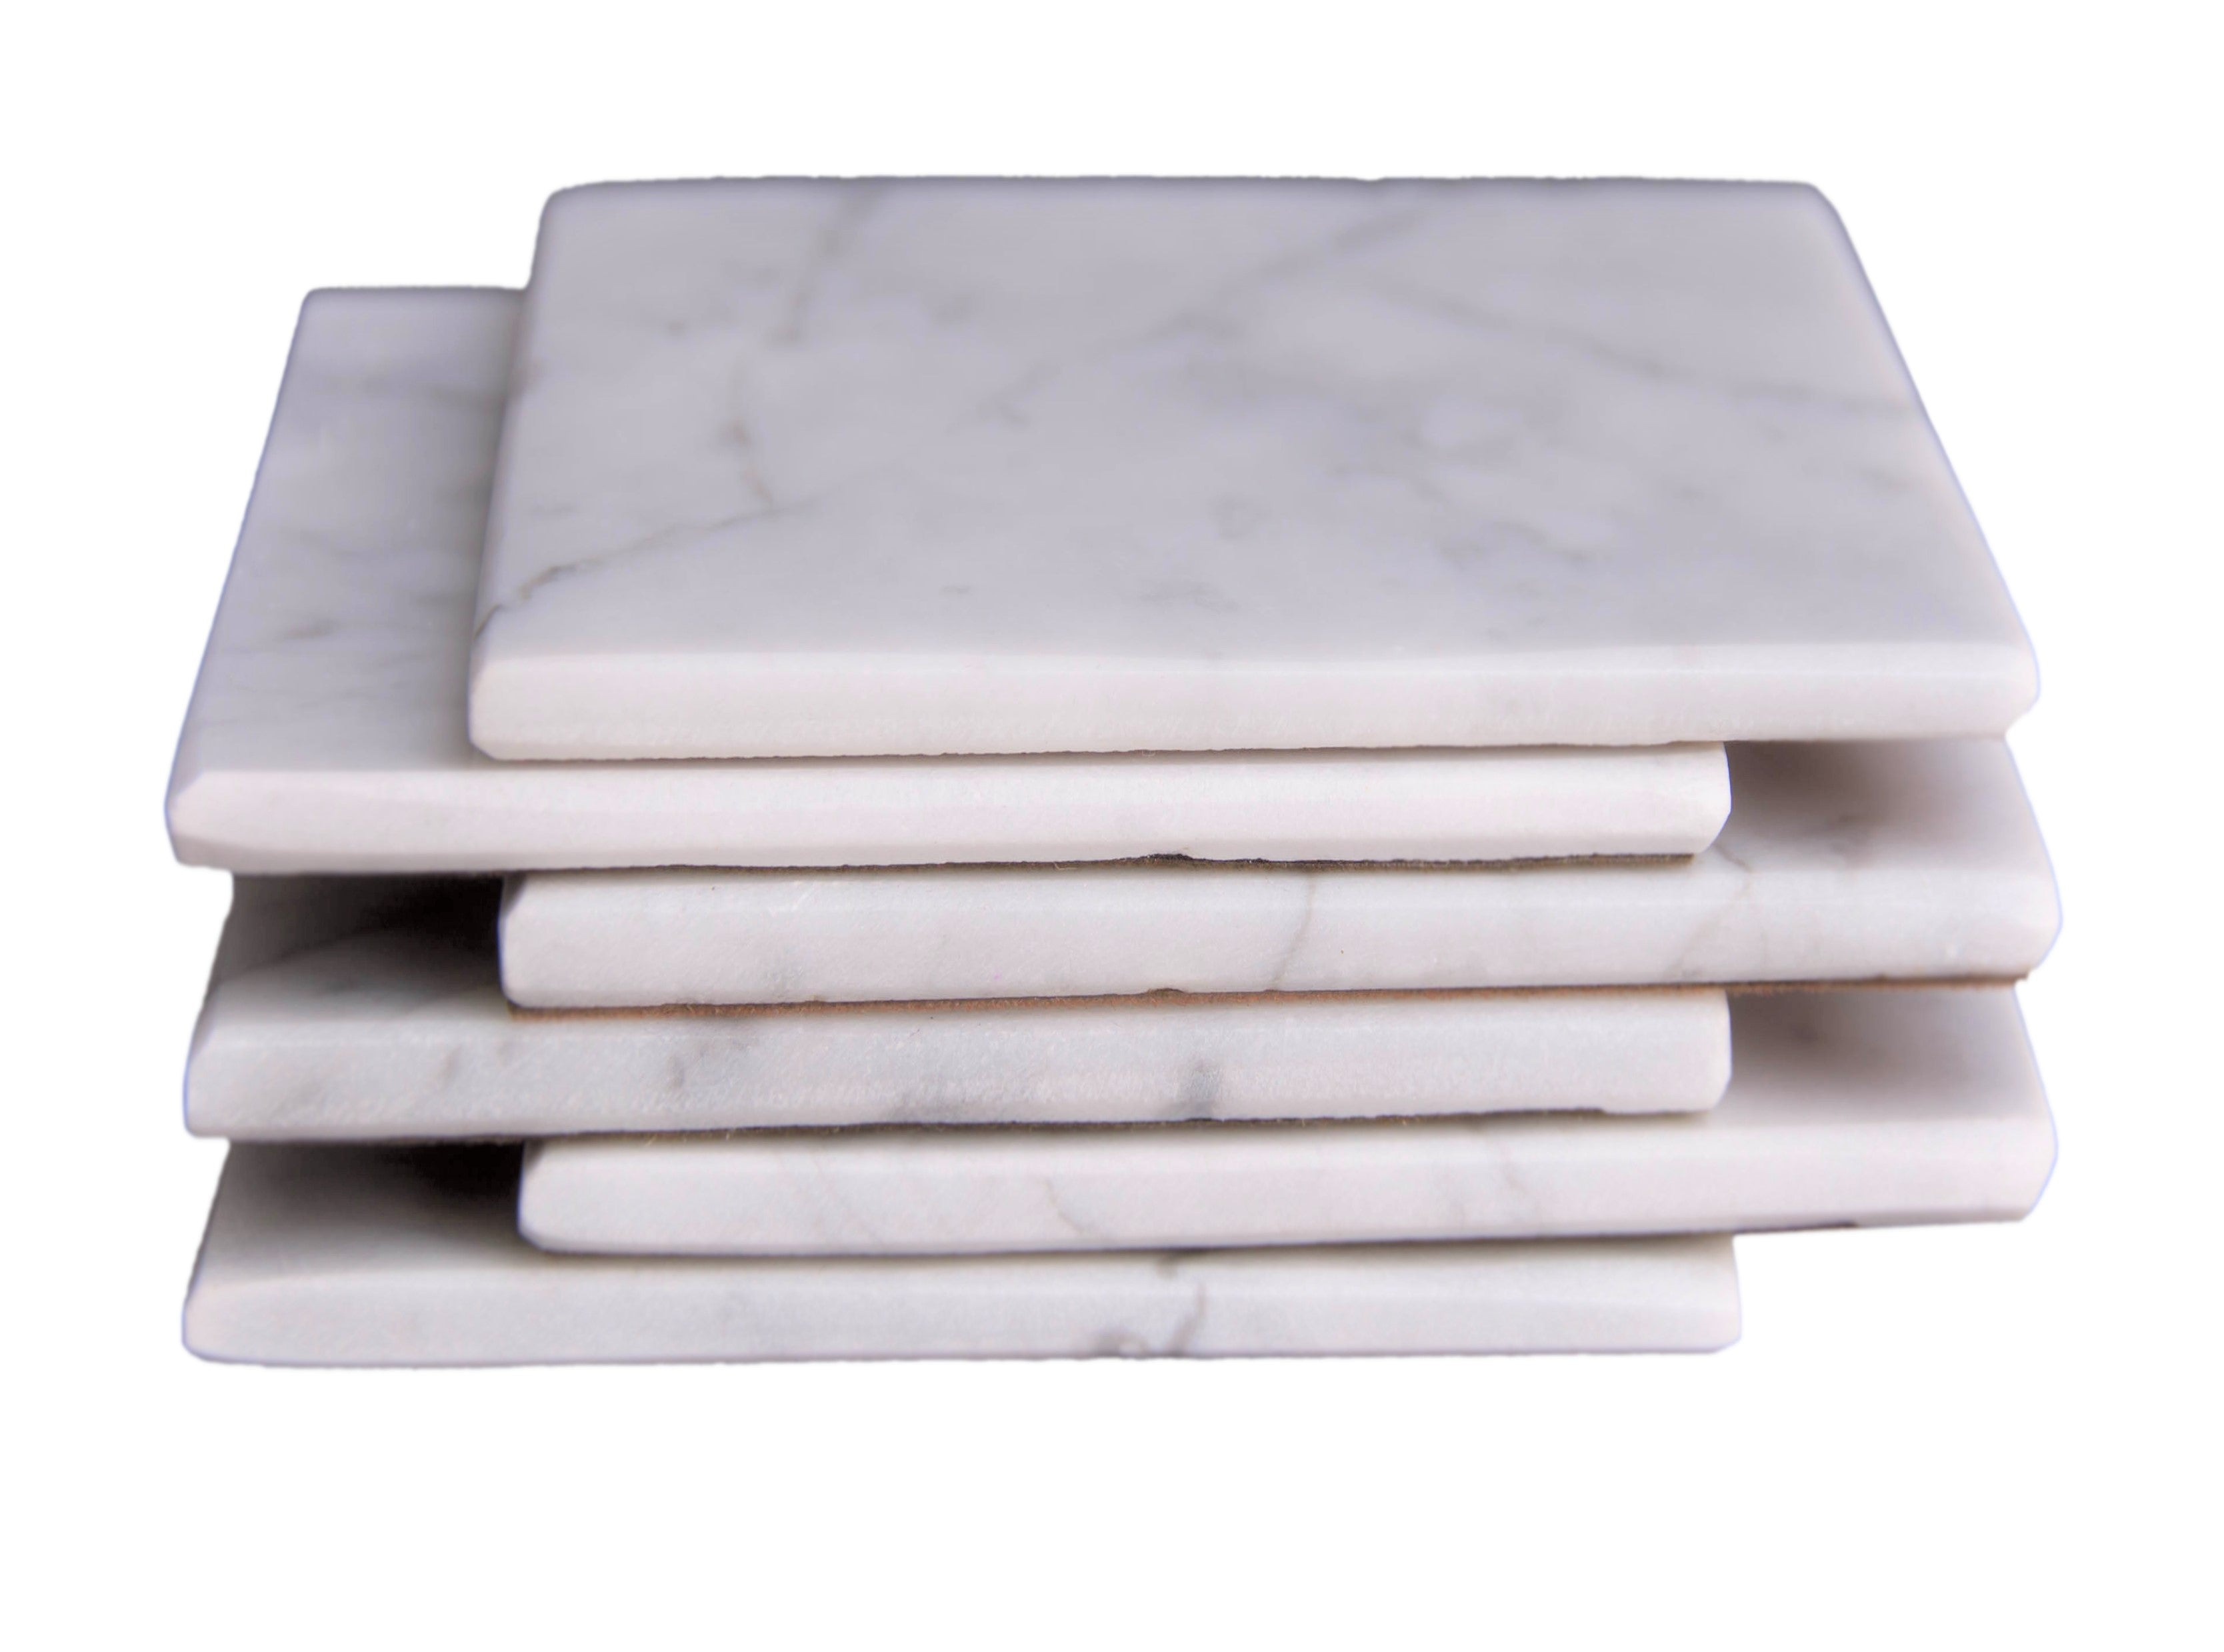 Set of 6 - White Marble Stone Coasters Polished Coasters 3.5 x 3.5 Inches ( 9x9 cm) Square Protection from Drink Rings -CraftsOfEgypt